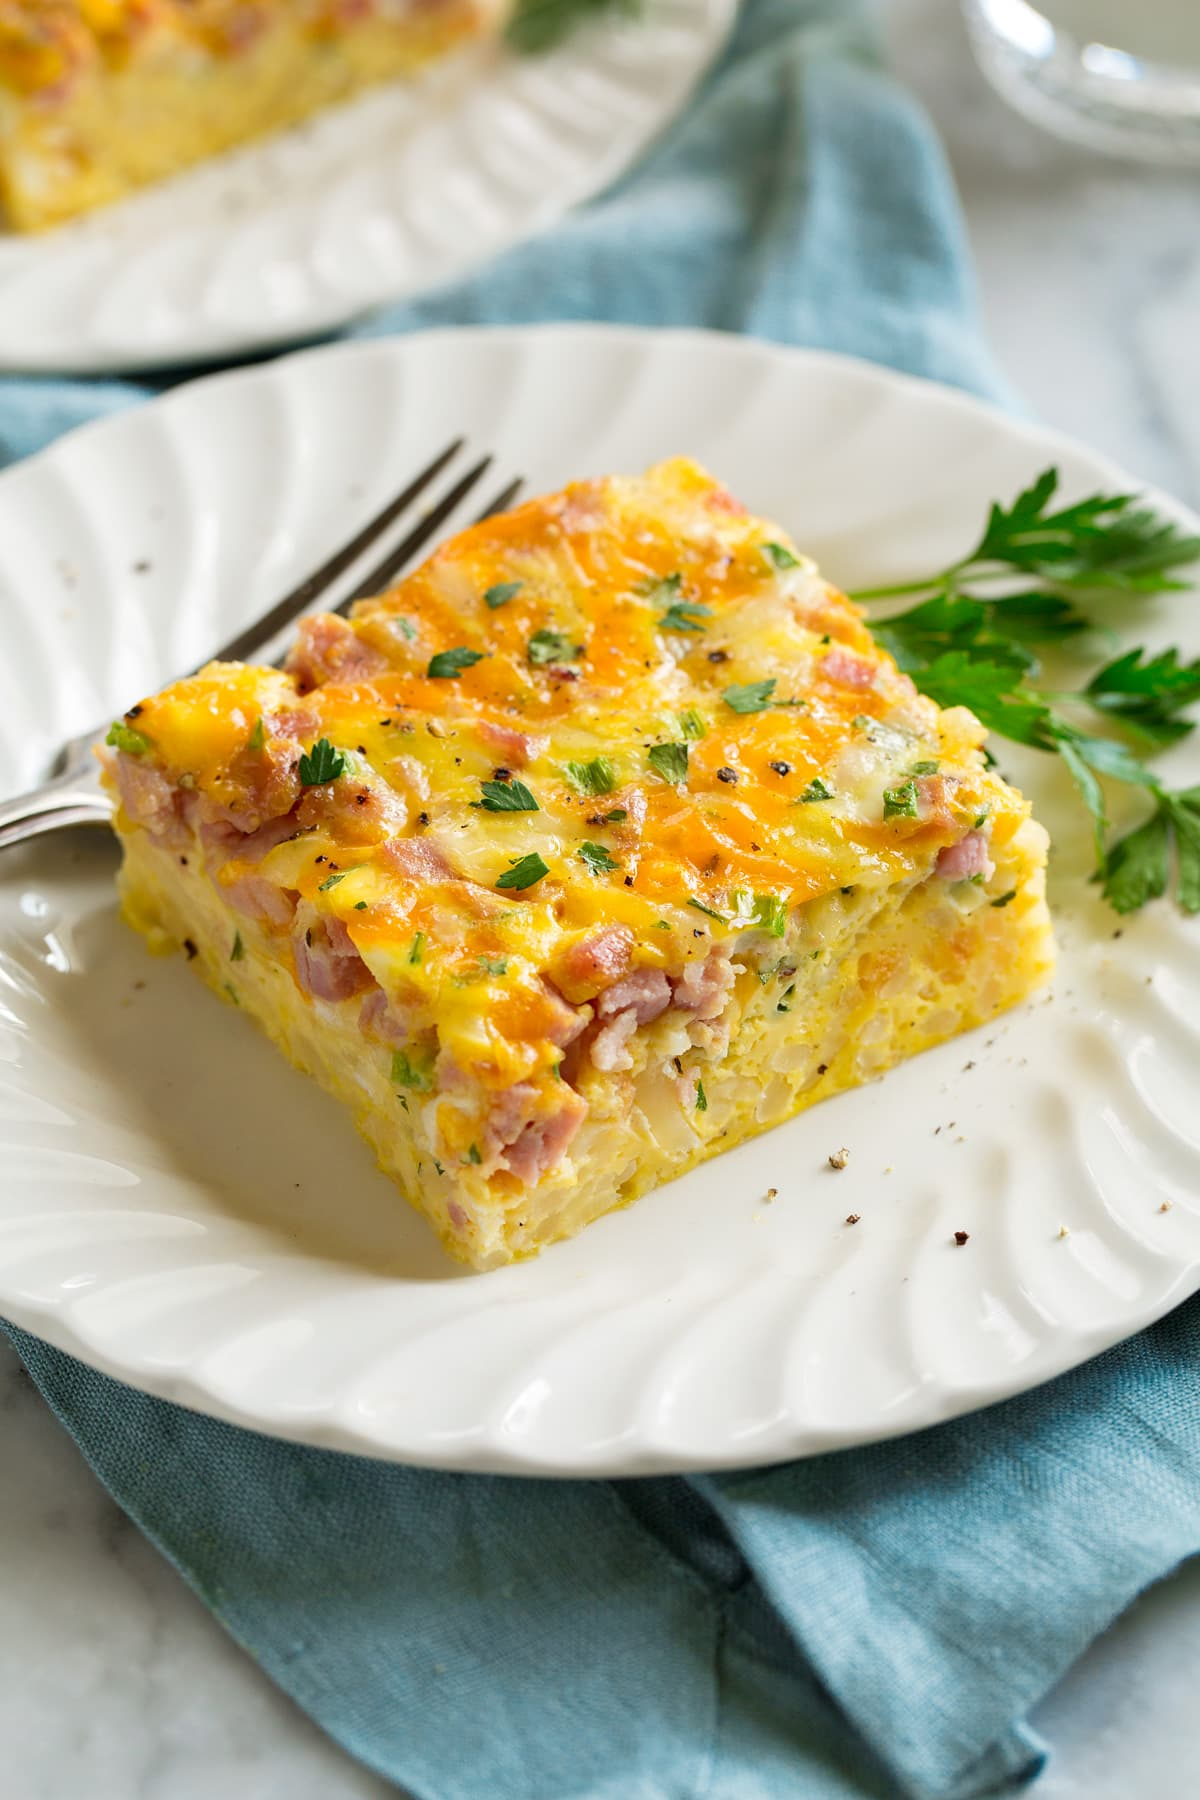 Slice of breakfast casserole filled with eggs, hash browns, ham and cheese on a white serving plate.